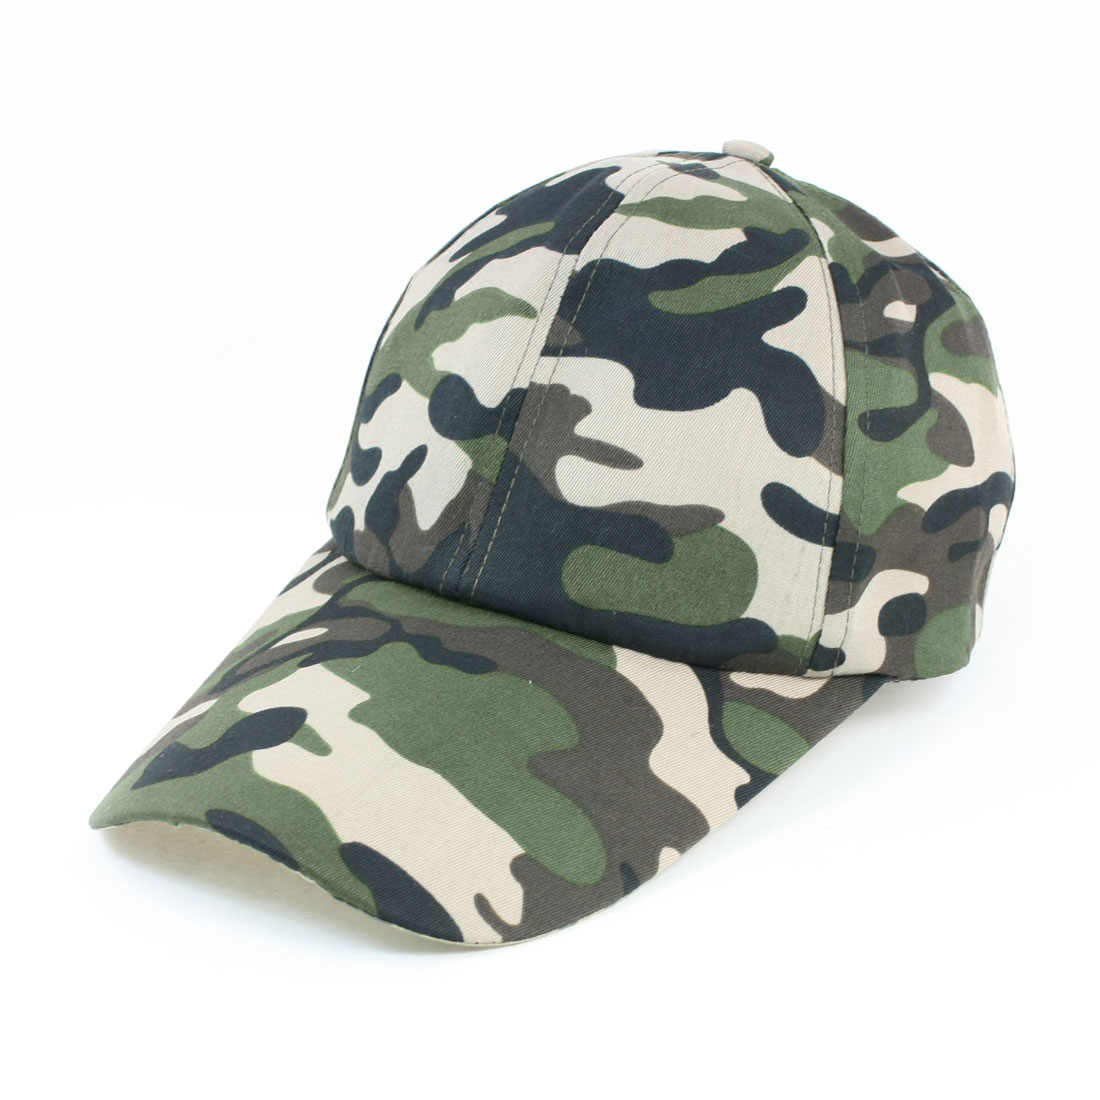 Unisex Sports Camouflage Printed Adjustable Slide Buckle Sun Visor Cap 3-Color